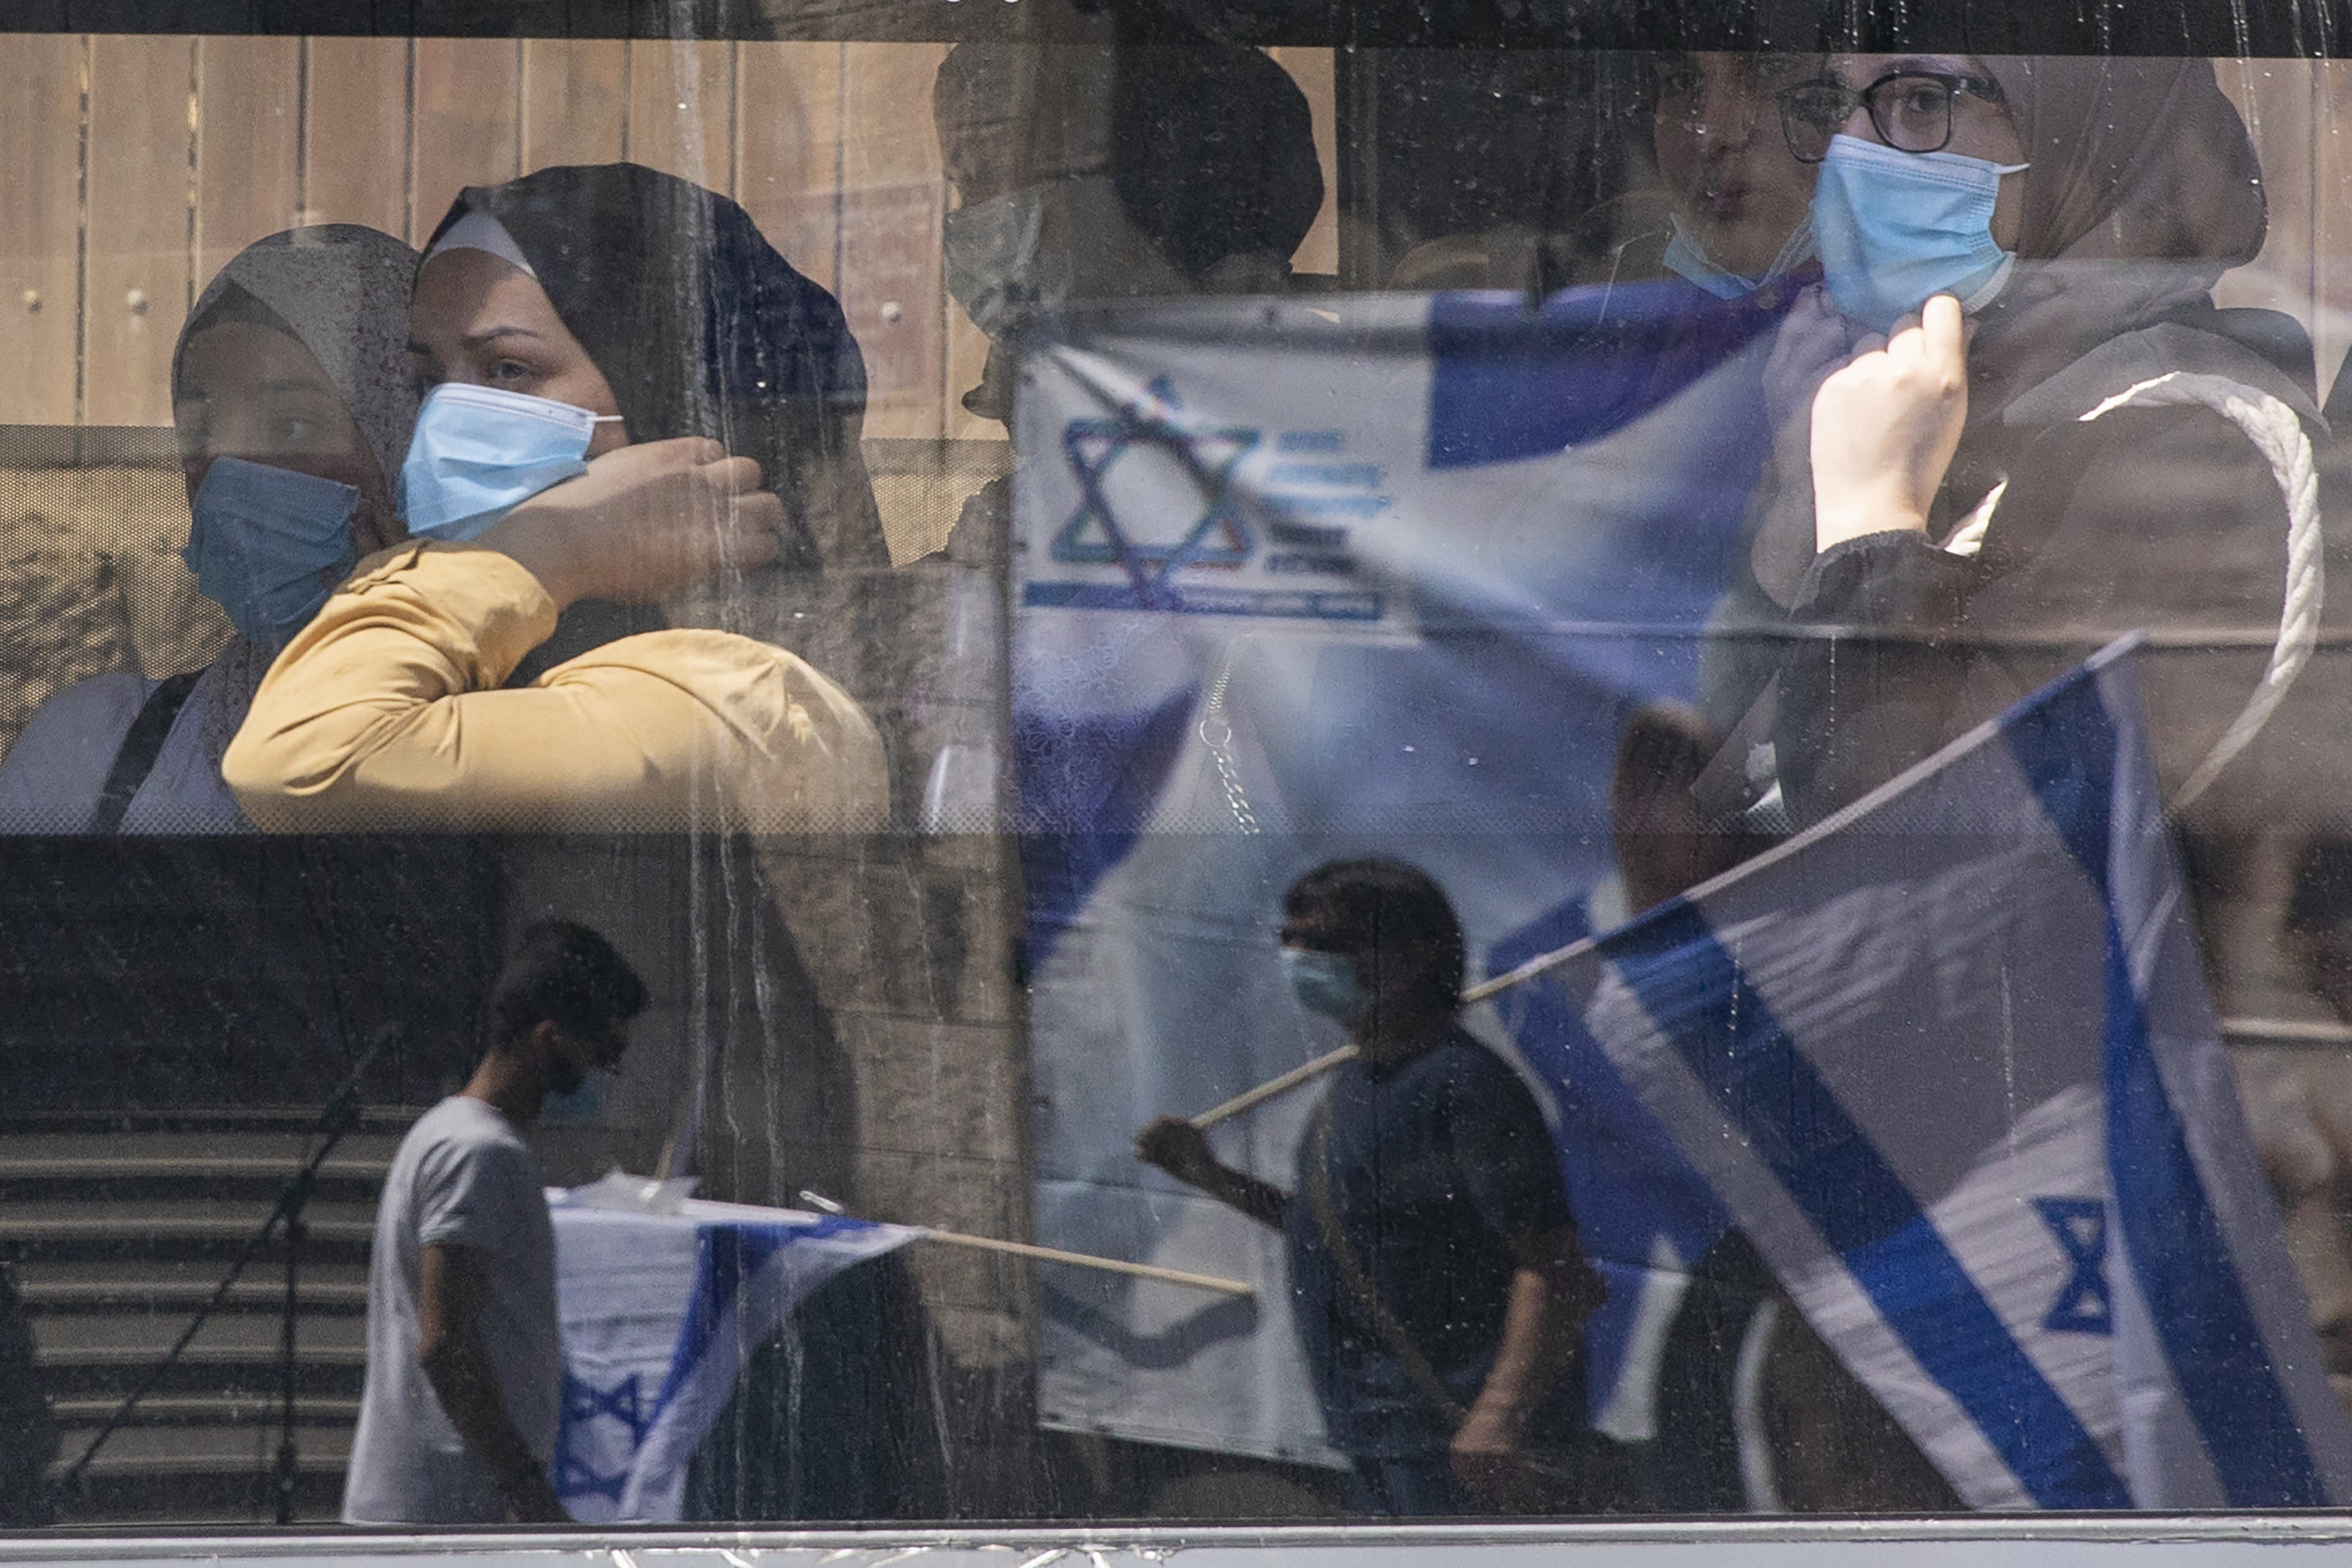 Women wearing face masks to protect from the coronavirus ride a public bus as they watch supporters of Prime Minister Benjamin Netanyahu wave flags outside the district court in Jerusalem, Sunday, July 19, 2020. The corruption trial of Netanyahu has resumed following a two-month hiatus. (AP Photo/Ariel Schalit)